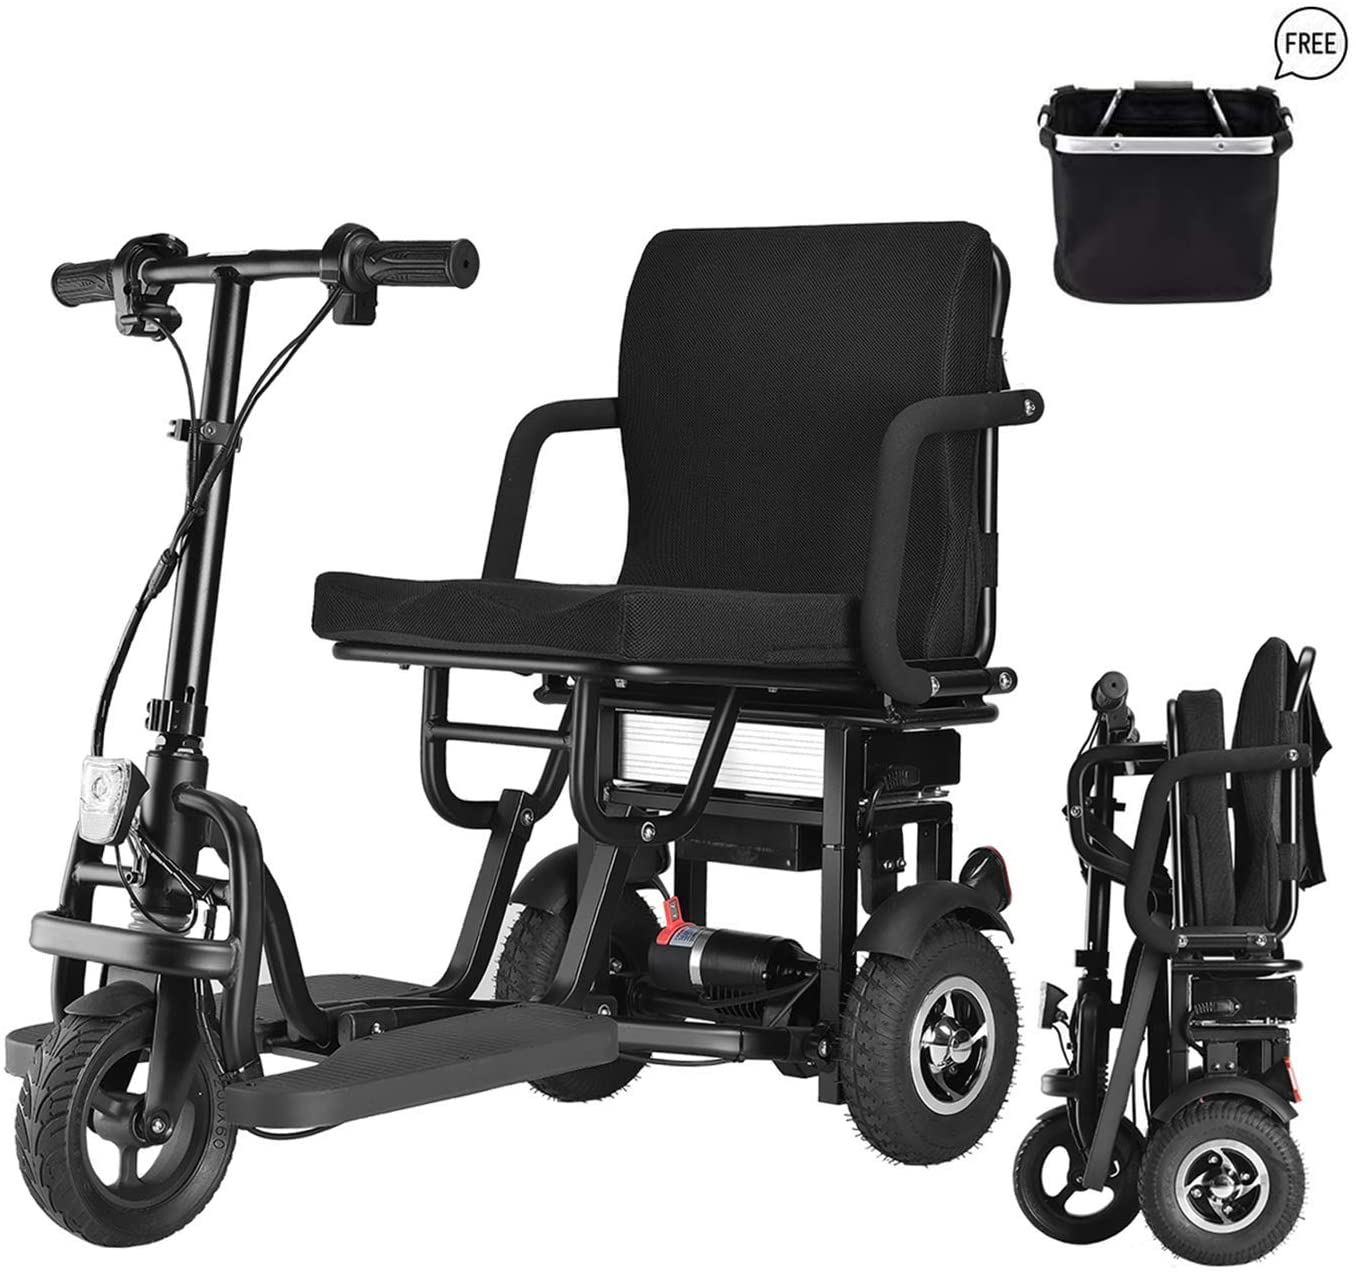 WISGING Scooter Mobility Folding Electric 3 Whe Gifts Purchase